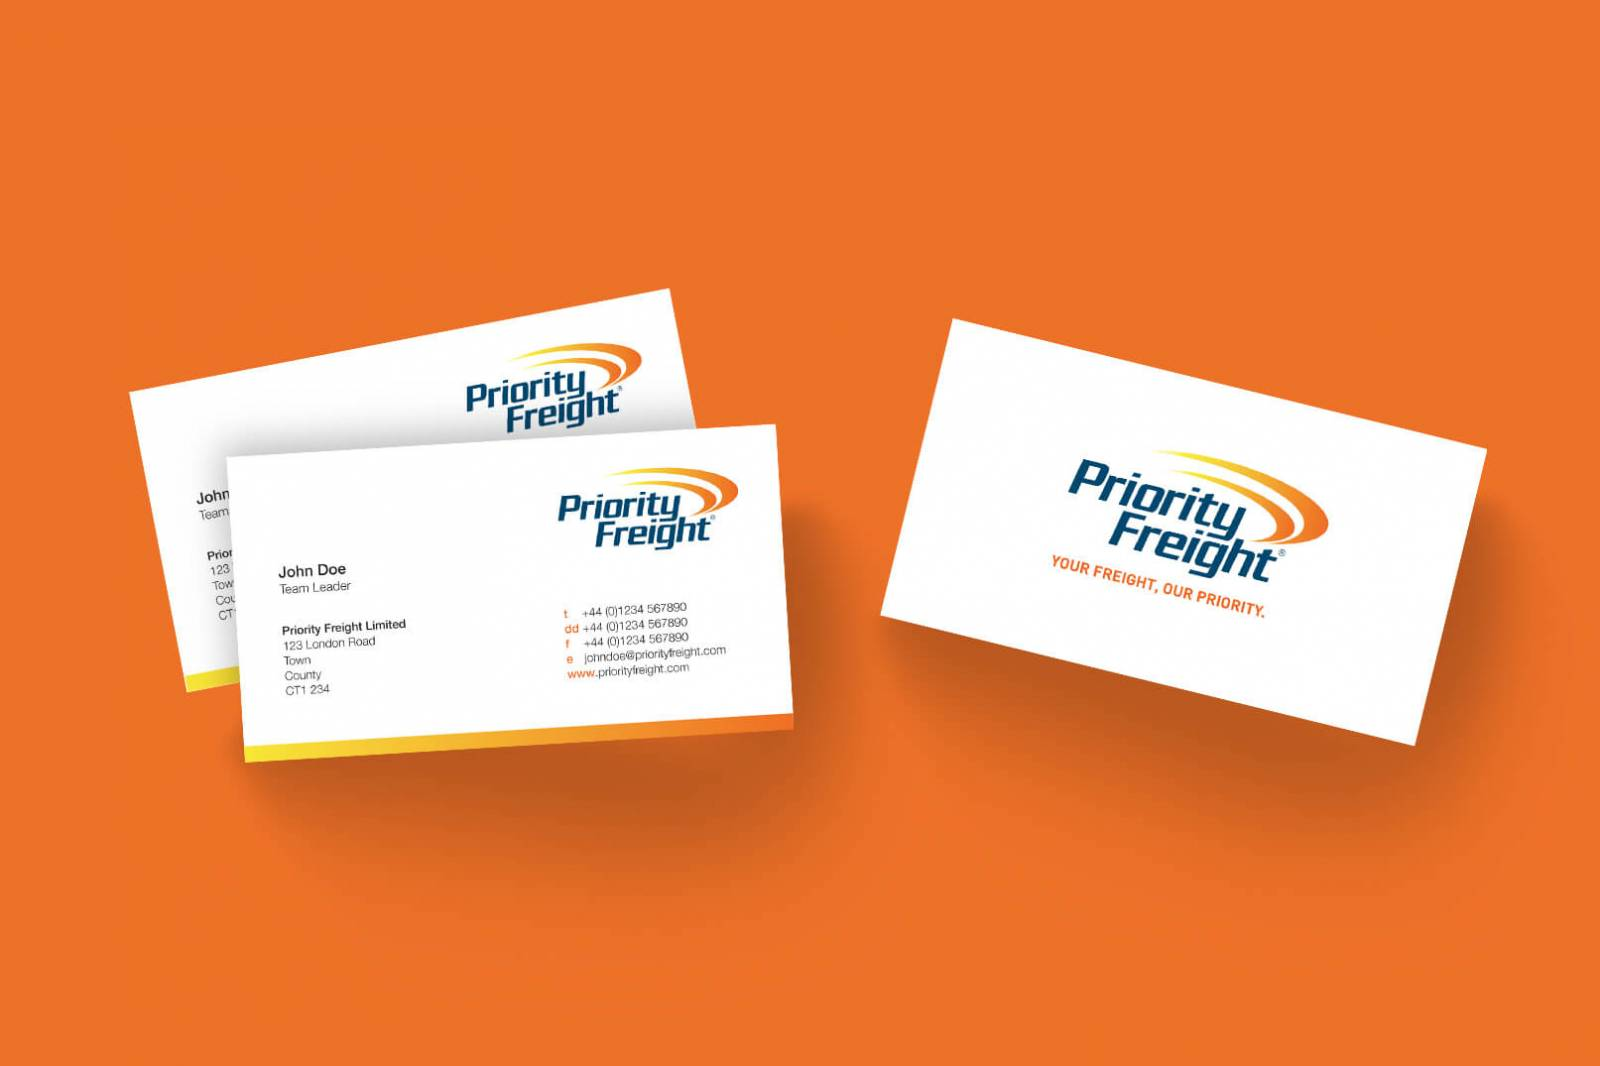 Business-Priority-Freight-business-cards-design-agency-graphic-design-canterbury.jpg